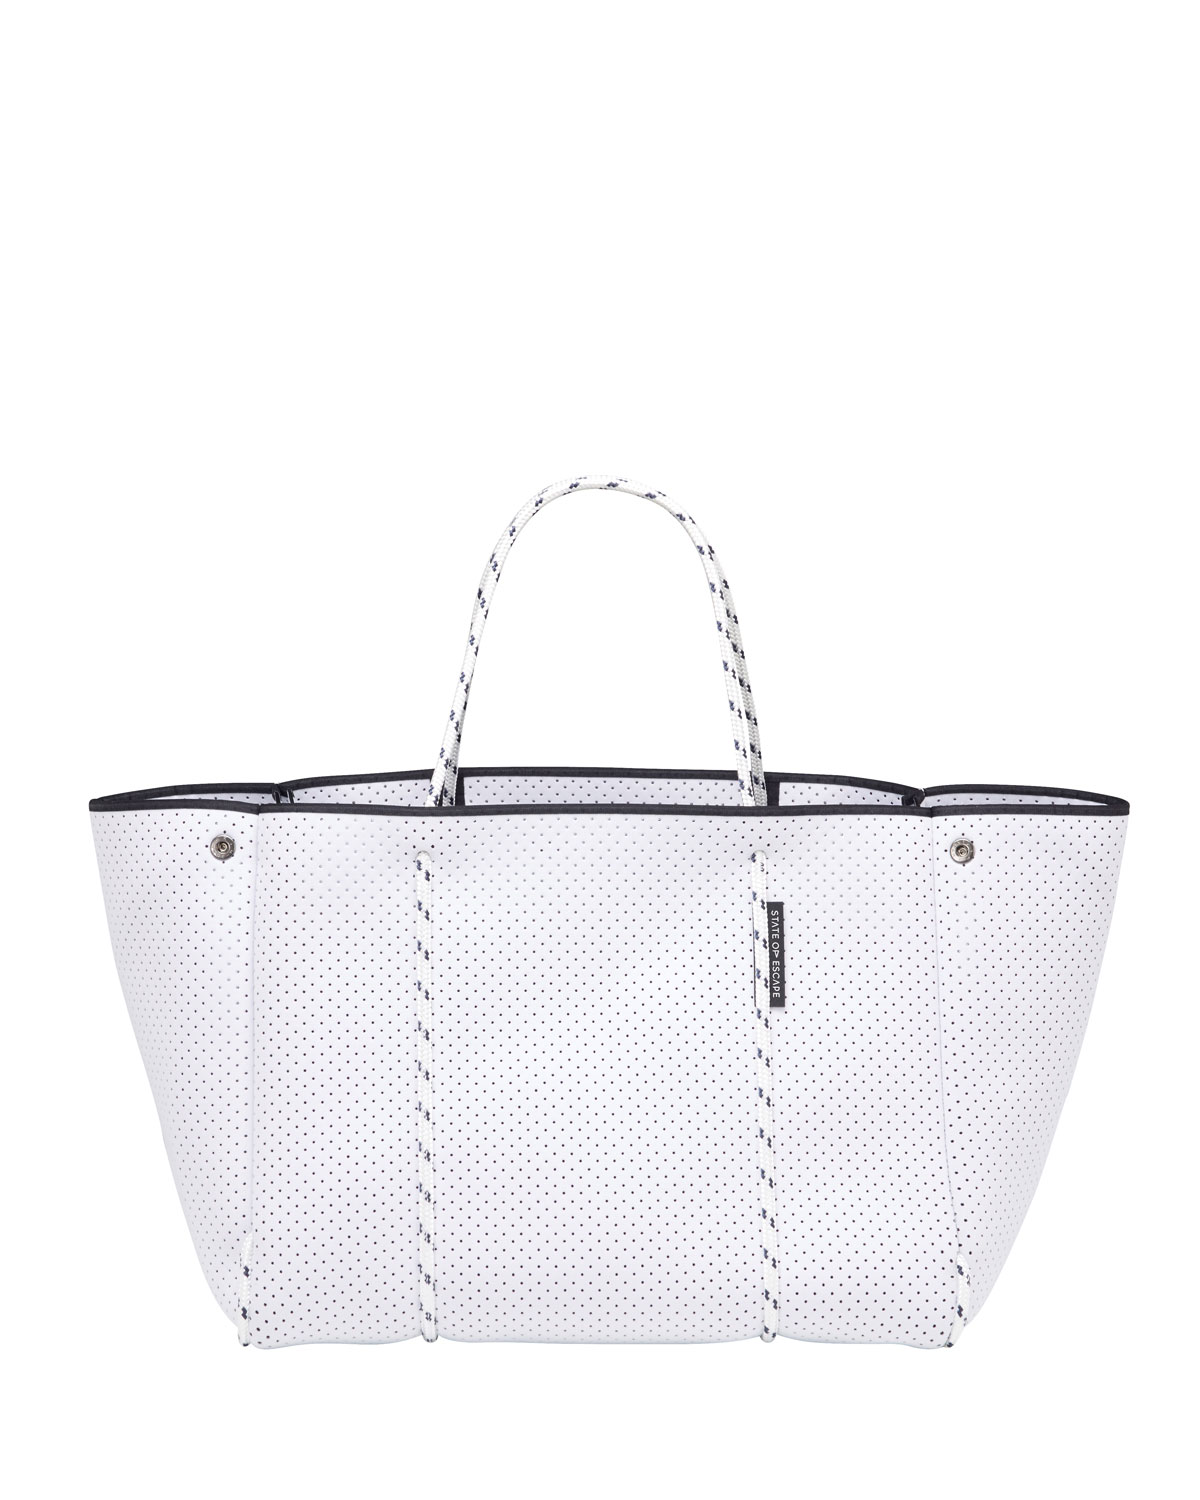 Escape Perforated Tote Bag, White